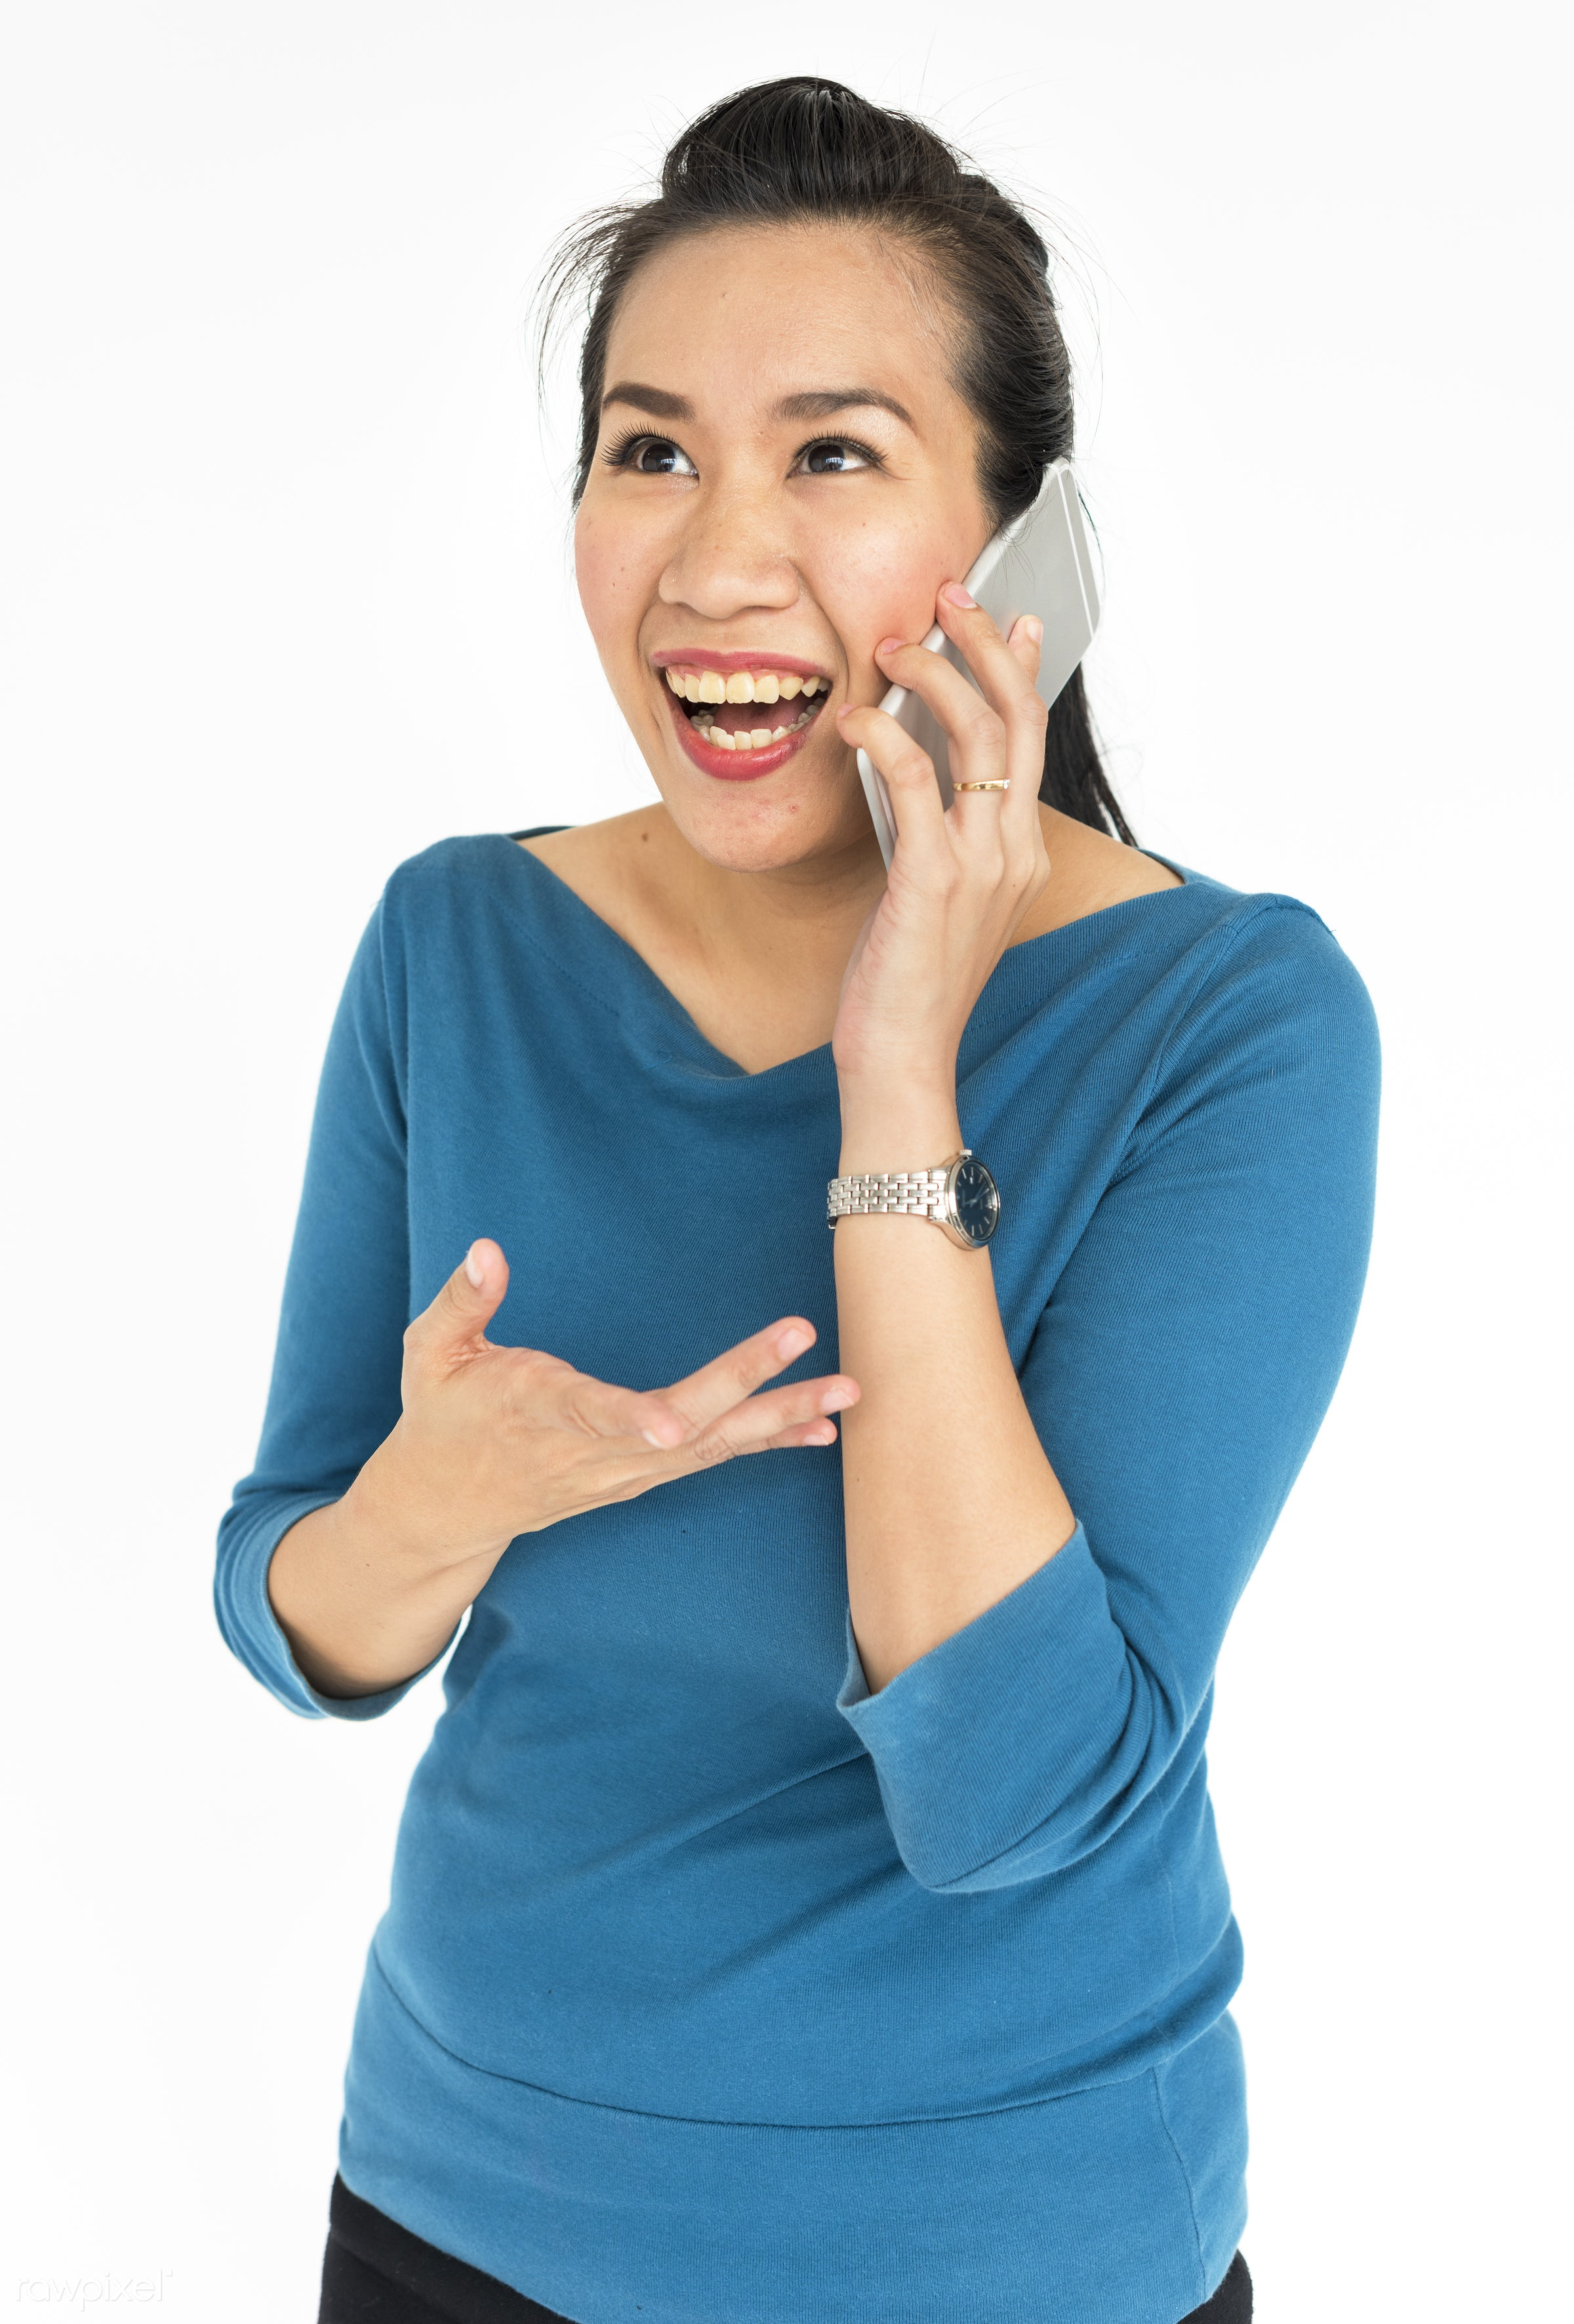 studio, expression, person, technology, people, asian, telecommunication, woman, mobile phone, smile, cheerful, smiling,...